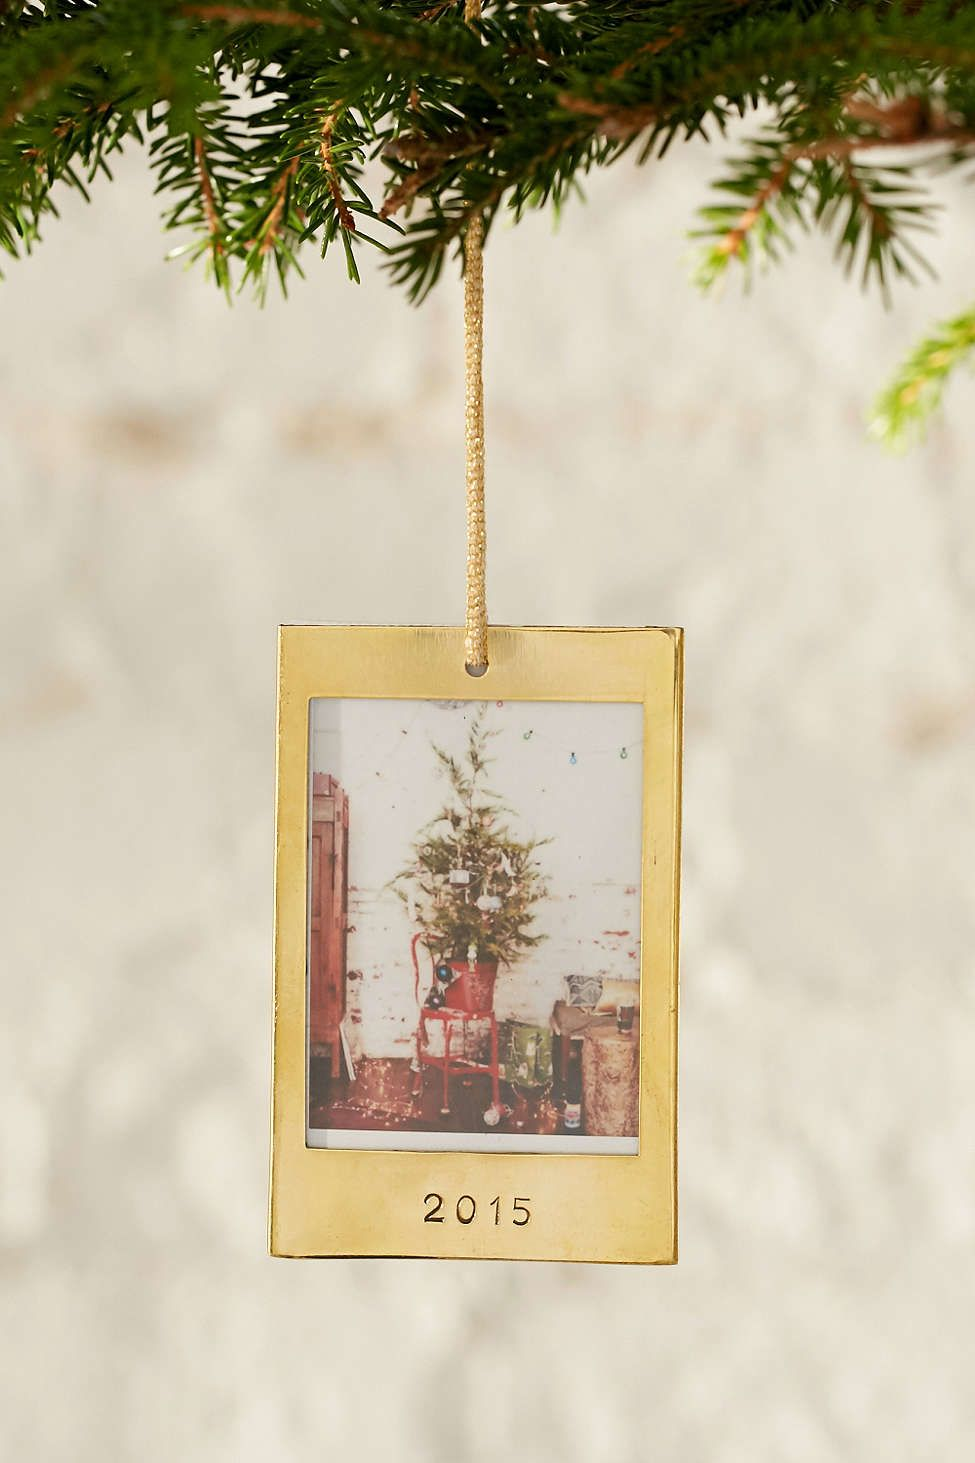 Instax 2015 Frame Ornament | Instant Film | Pinterest | Awesome ...